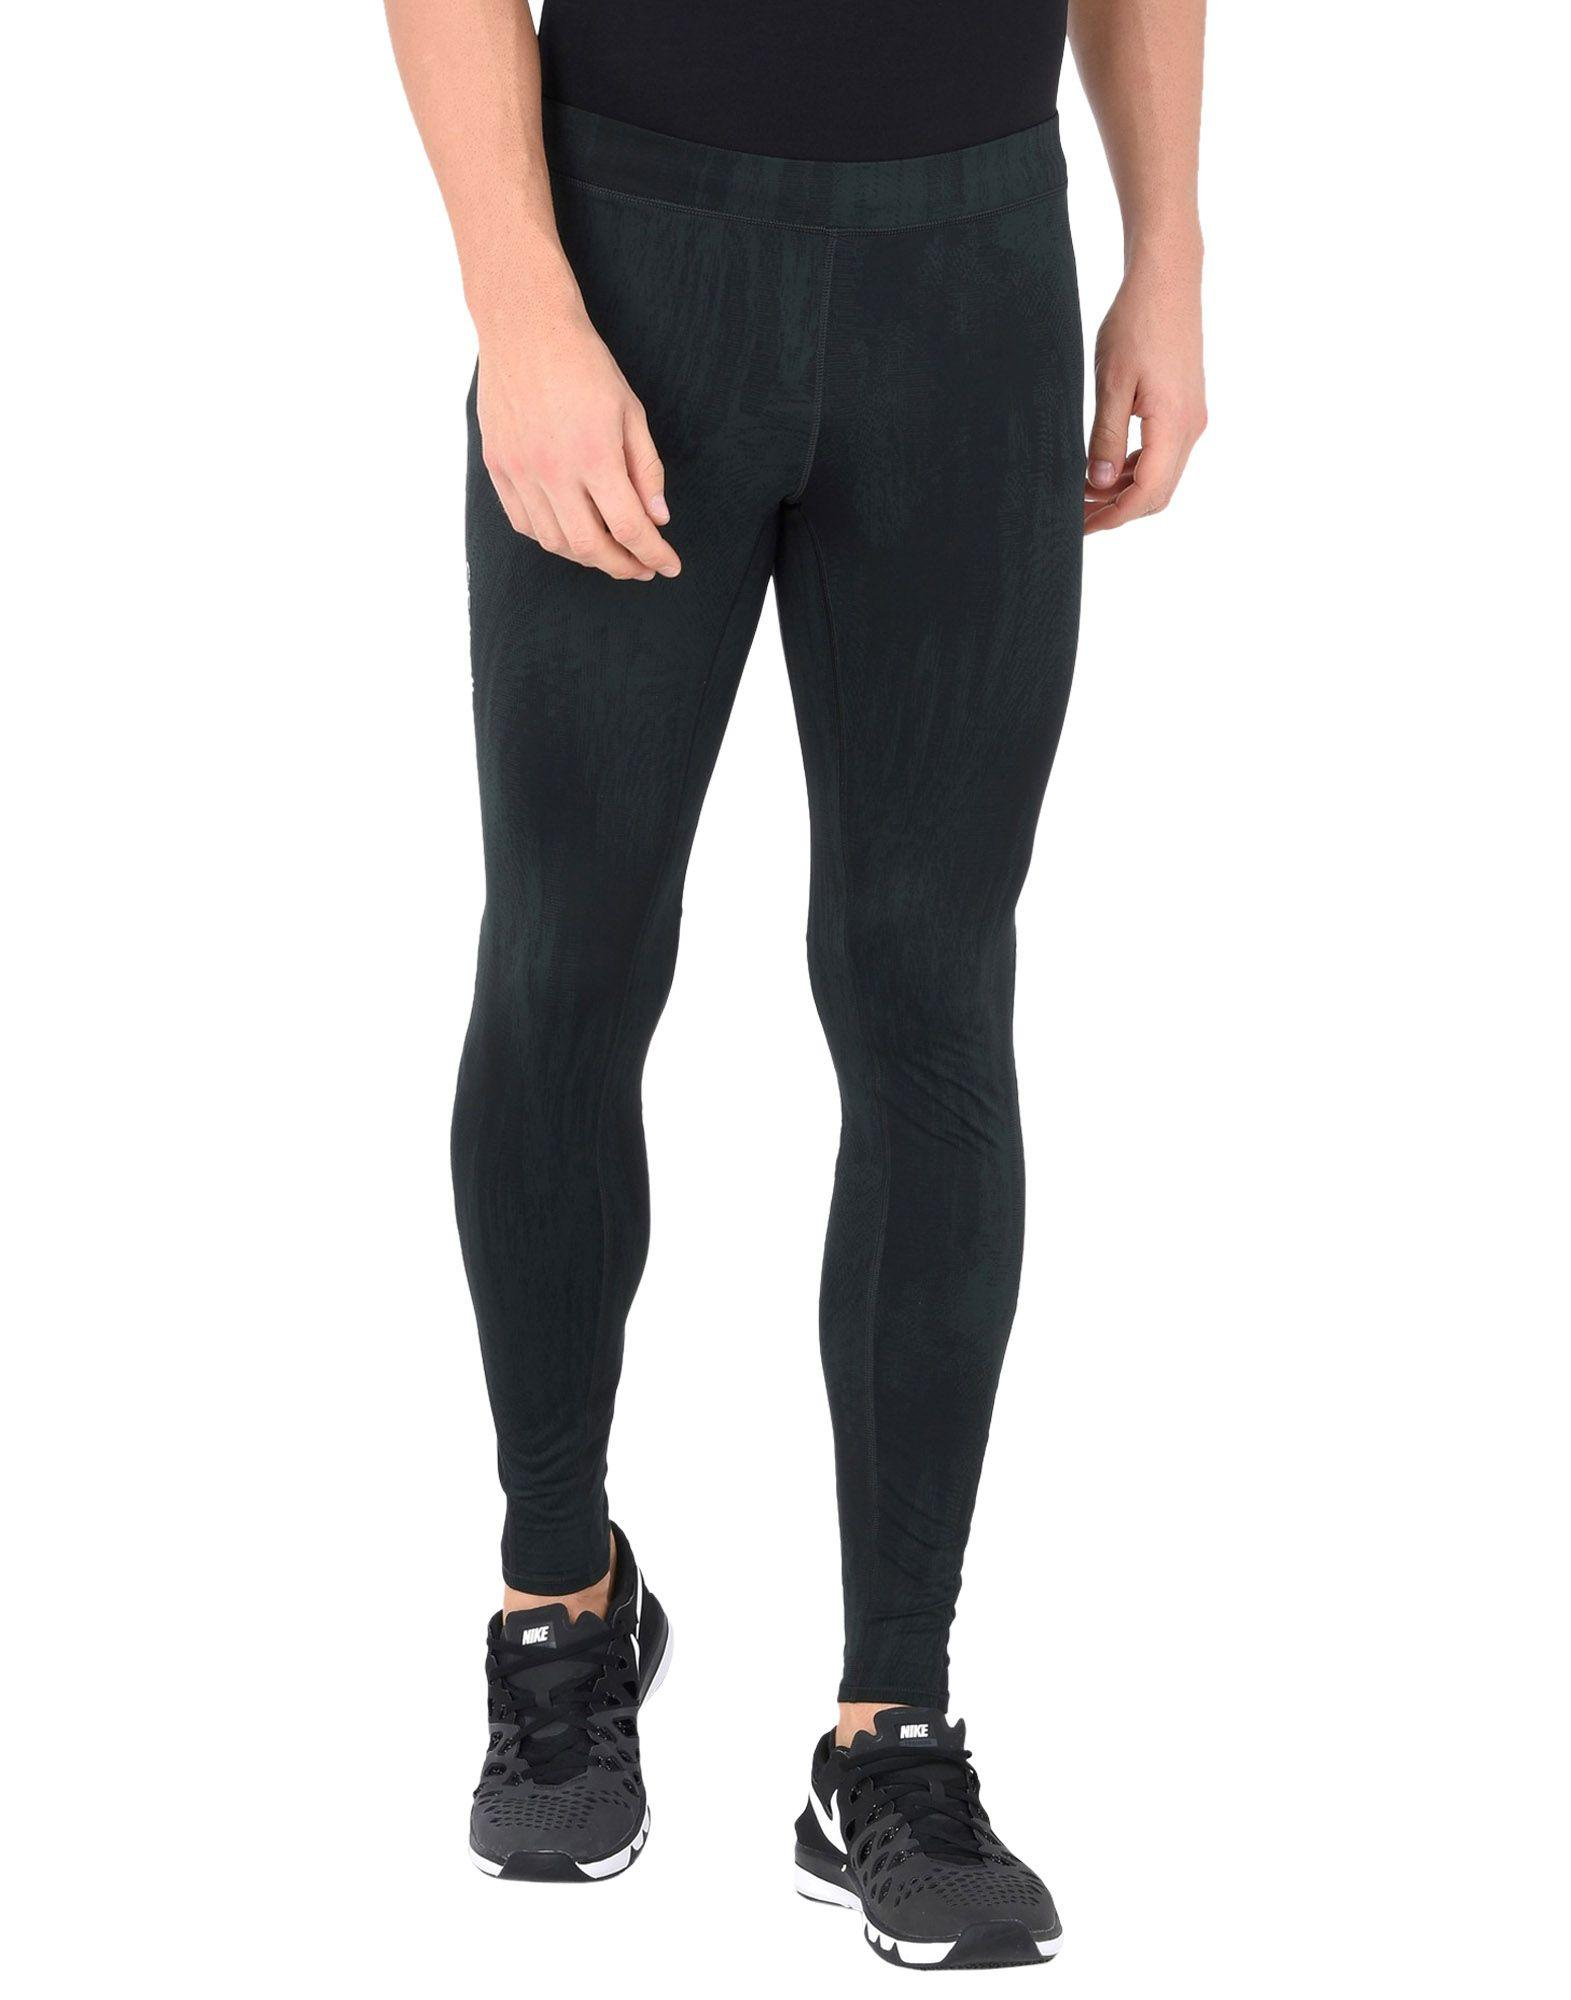 Casall Athletic Pant In Dark Green